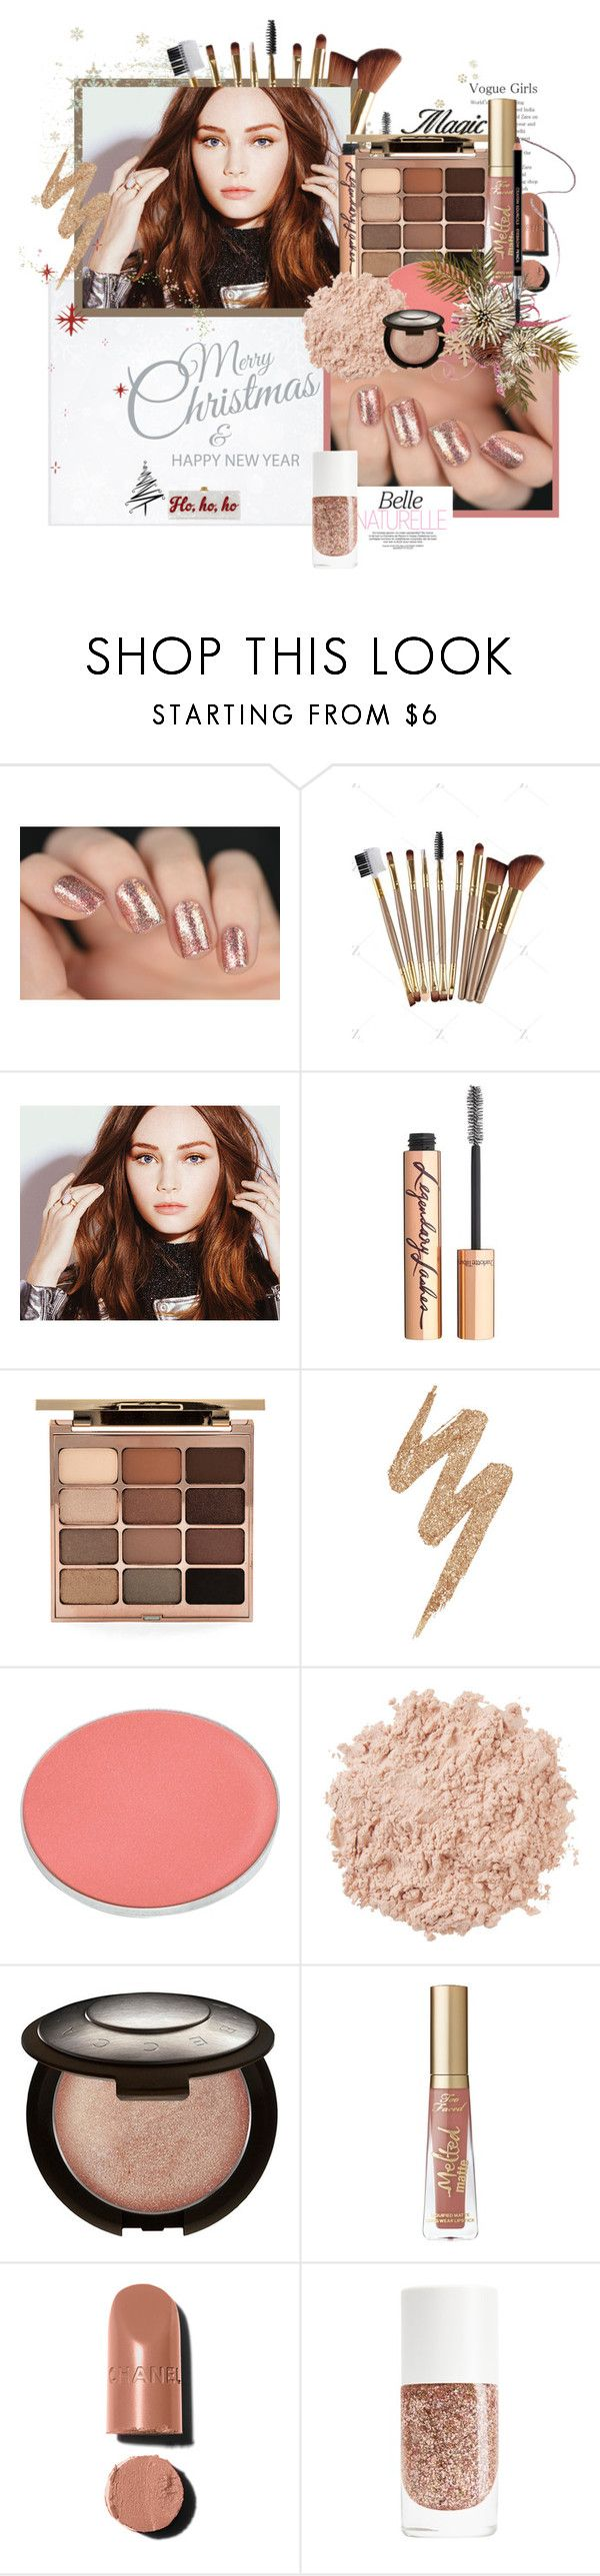 """""""natural christmas beauty"""" by akchen ❤ liked on Polyvore featuring beauty, Edie Parker, Charlotte Tilbury, Stila, Urban Decay, Chantecaille, La Mer, Becca, Too Faced Cosmetics and Givenchy"""